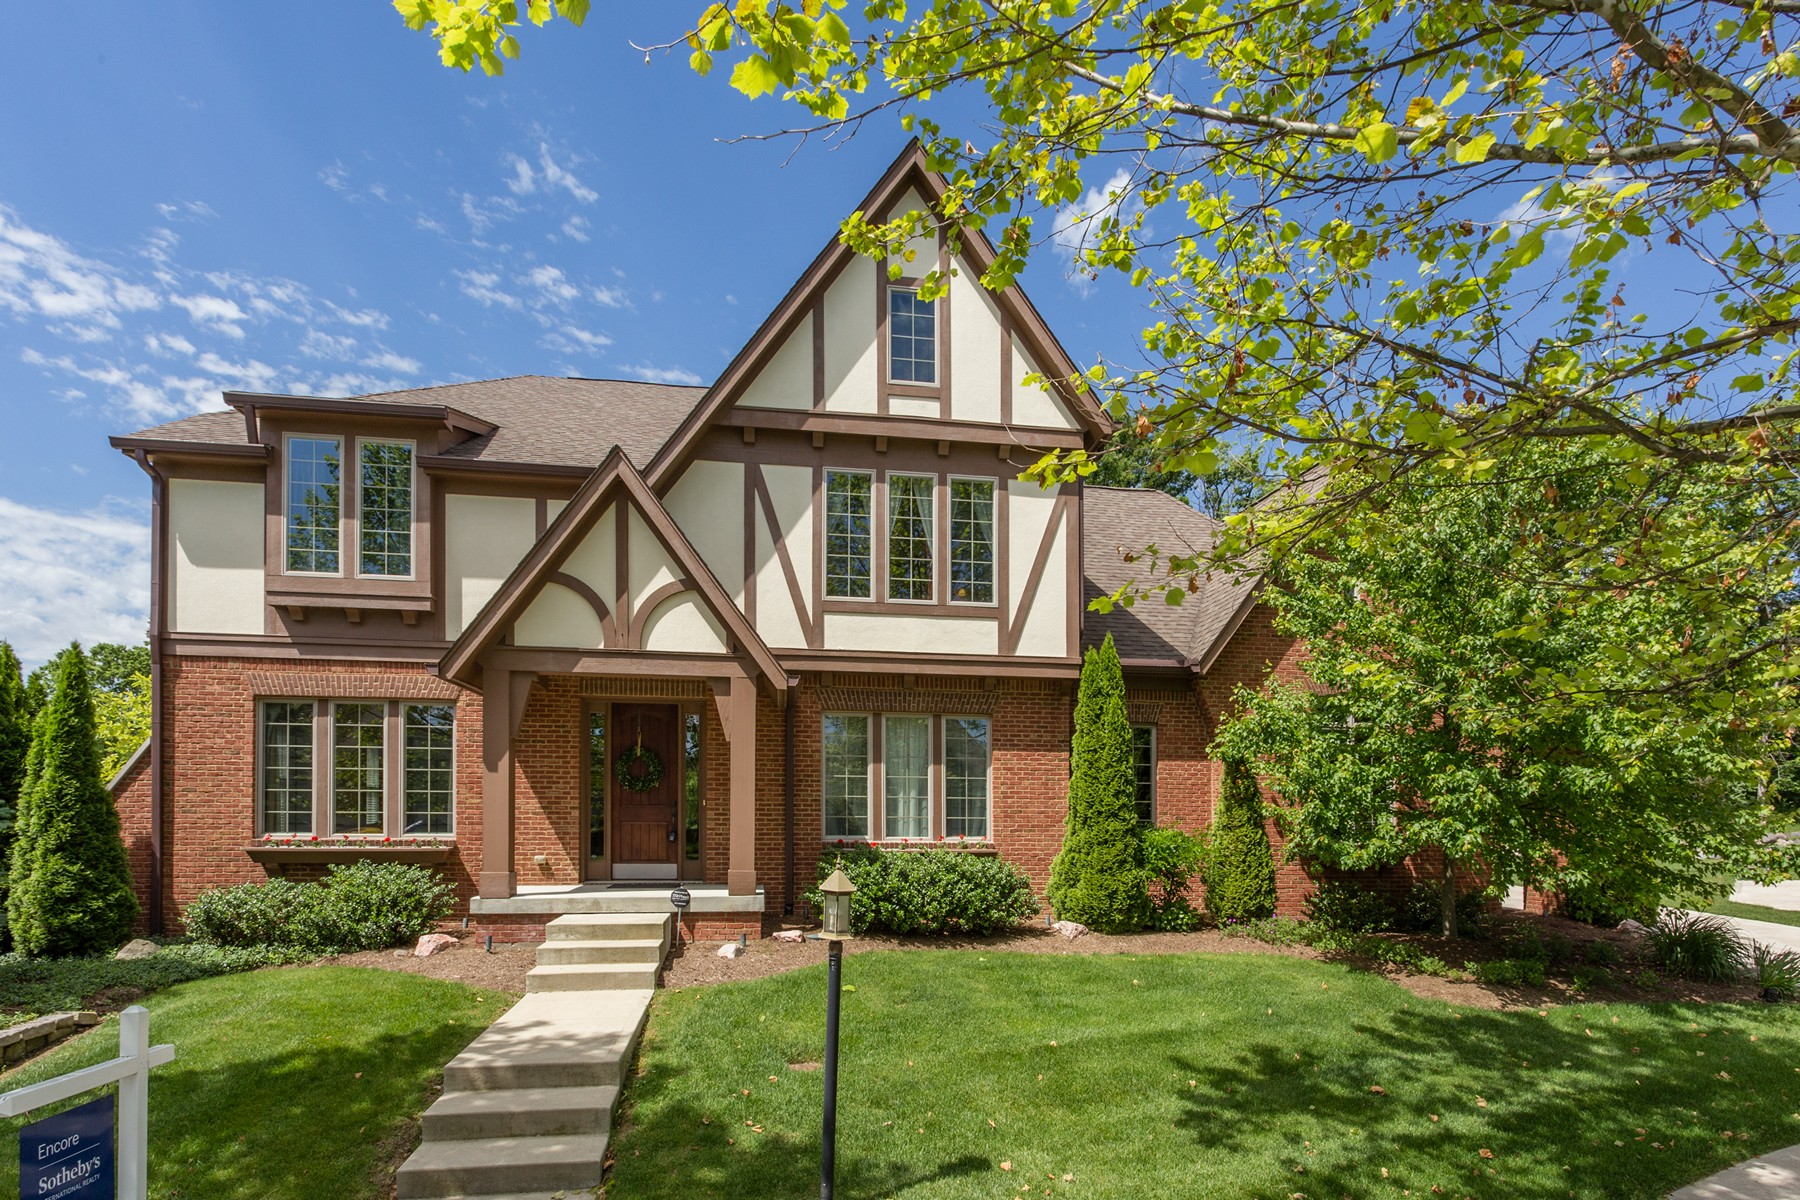 Single Family Home for Sale at Classic Tudor Home 5319 Randolph Crescent Drive Carmel, Indiana, 46033 United States